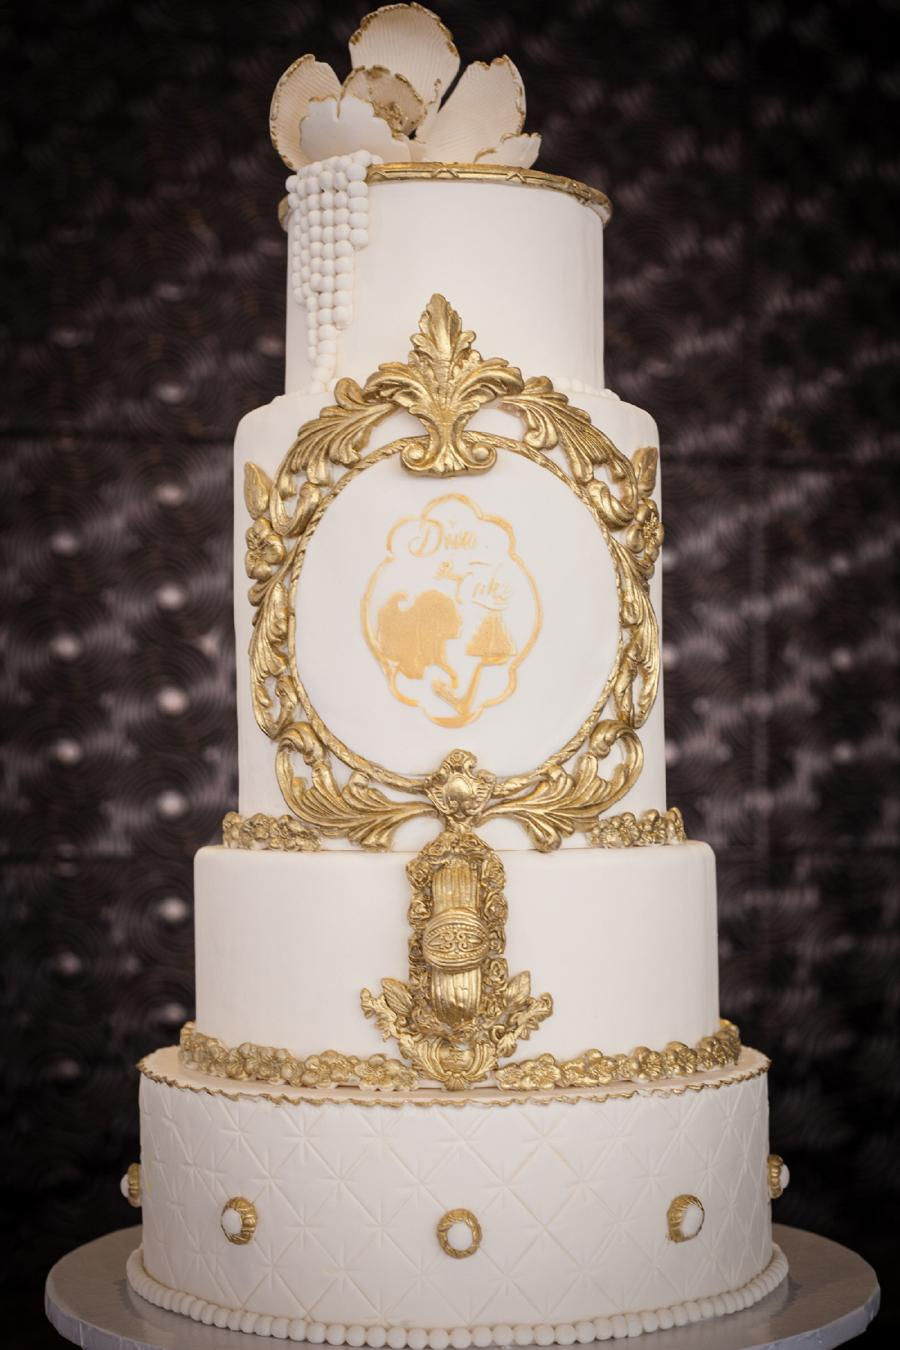 Gold & White Wedding Cake #2512495 - Weddbook